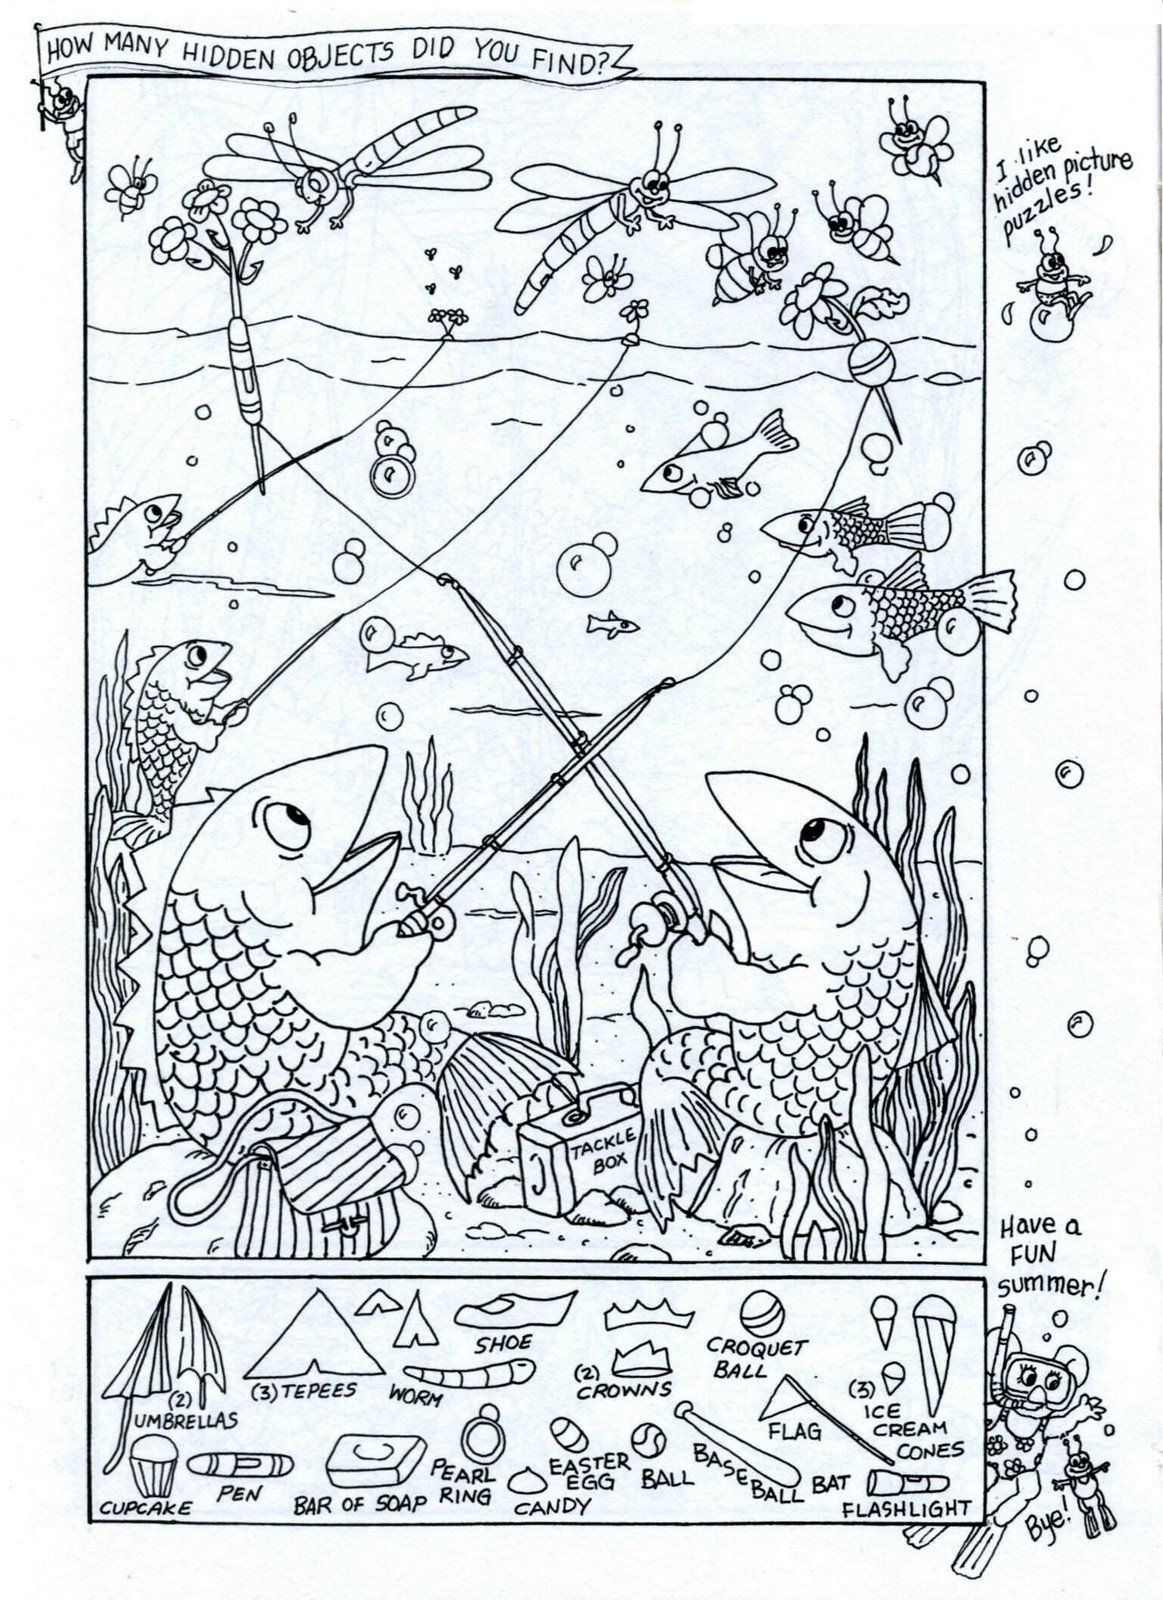 Summer Fun - Hidden Picture Puzzle/coloring Page   Puzzles-Logic - Free Printable Summer Puzzles